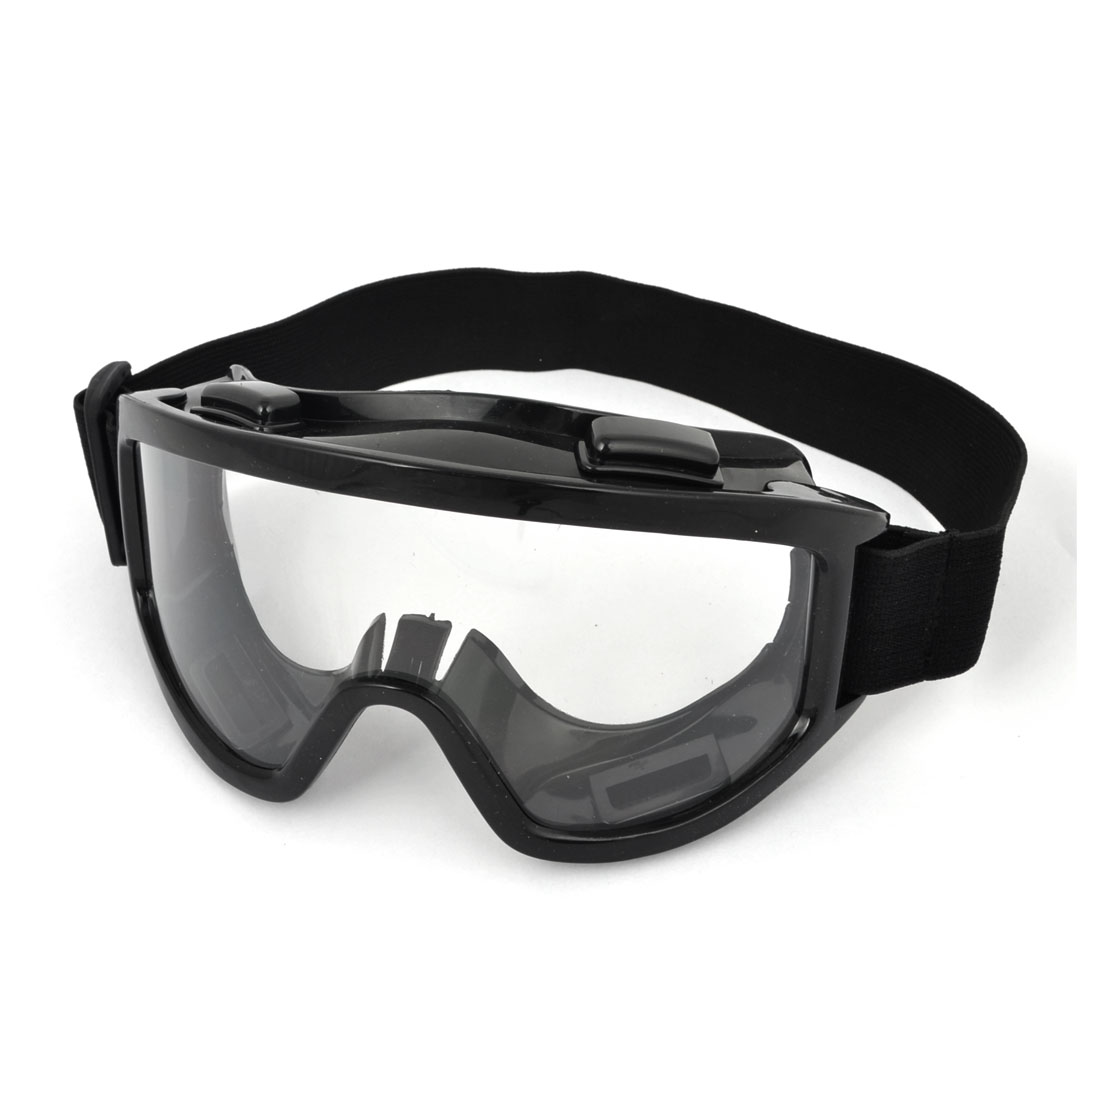 Black Winter Cycling Rubber Brim Glasses Anti Fog Ski Goggles Sunglasses